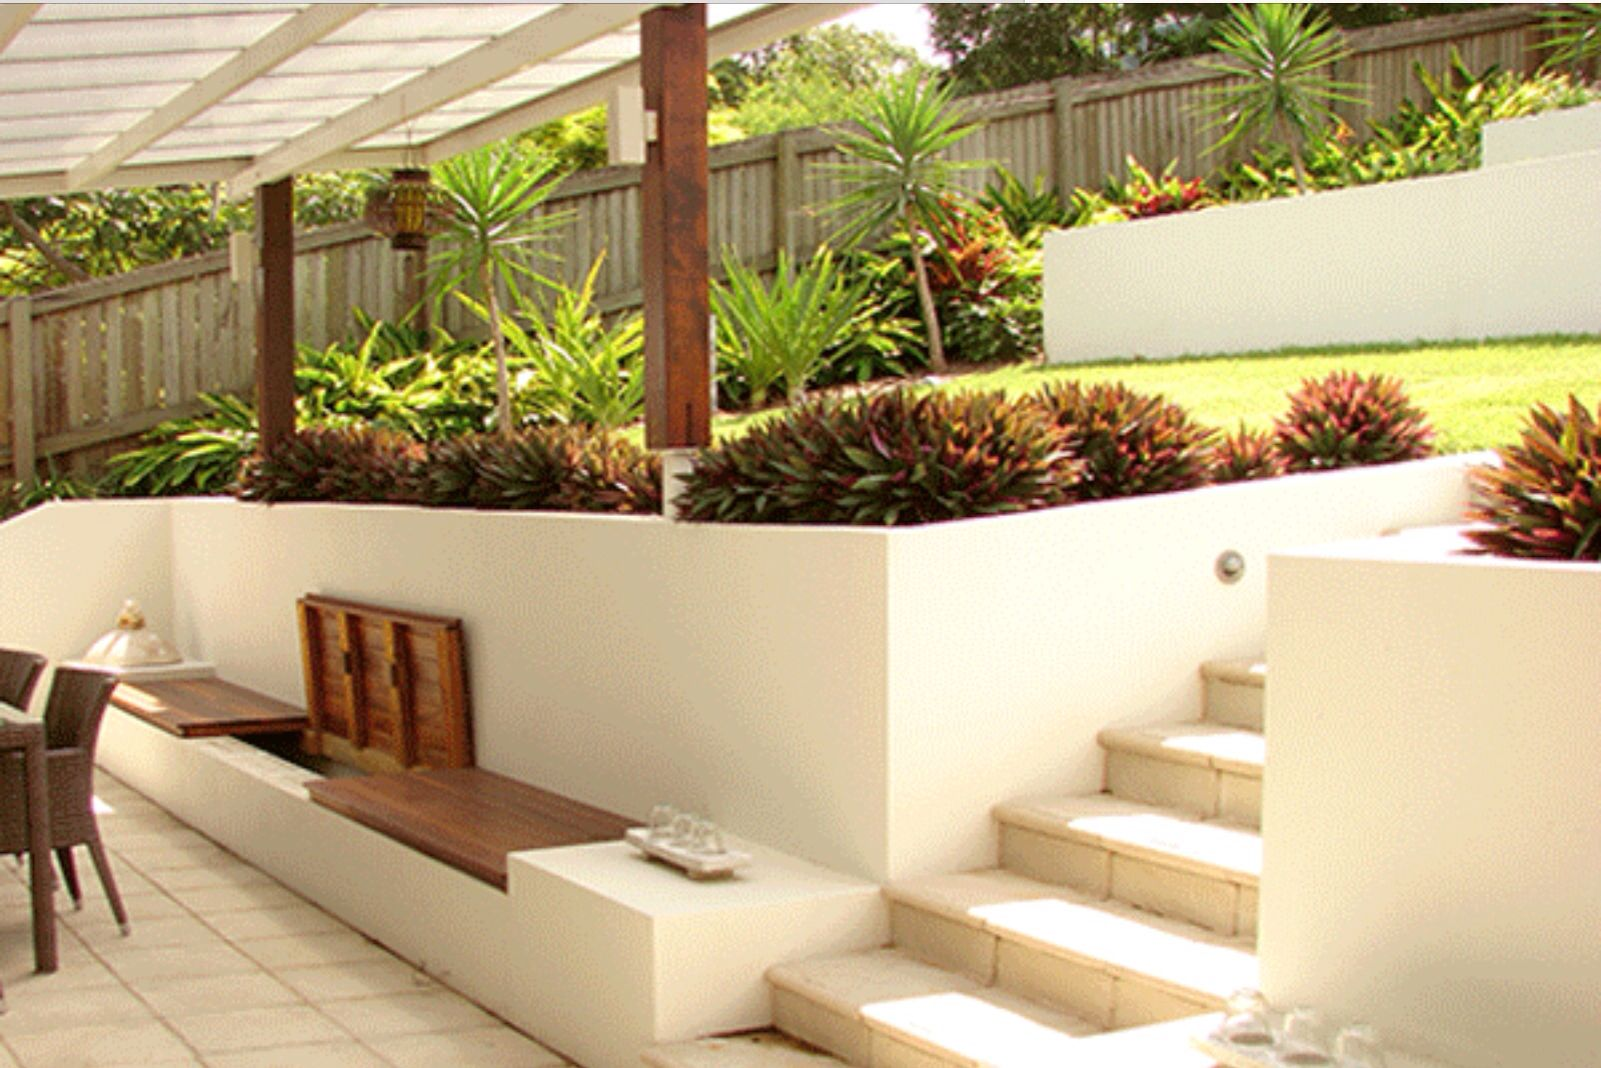 Retaining walls steps and built in seating storage for Retaining wall design ideas